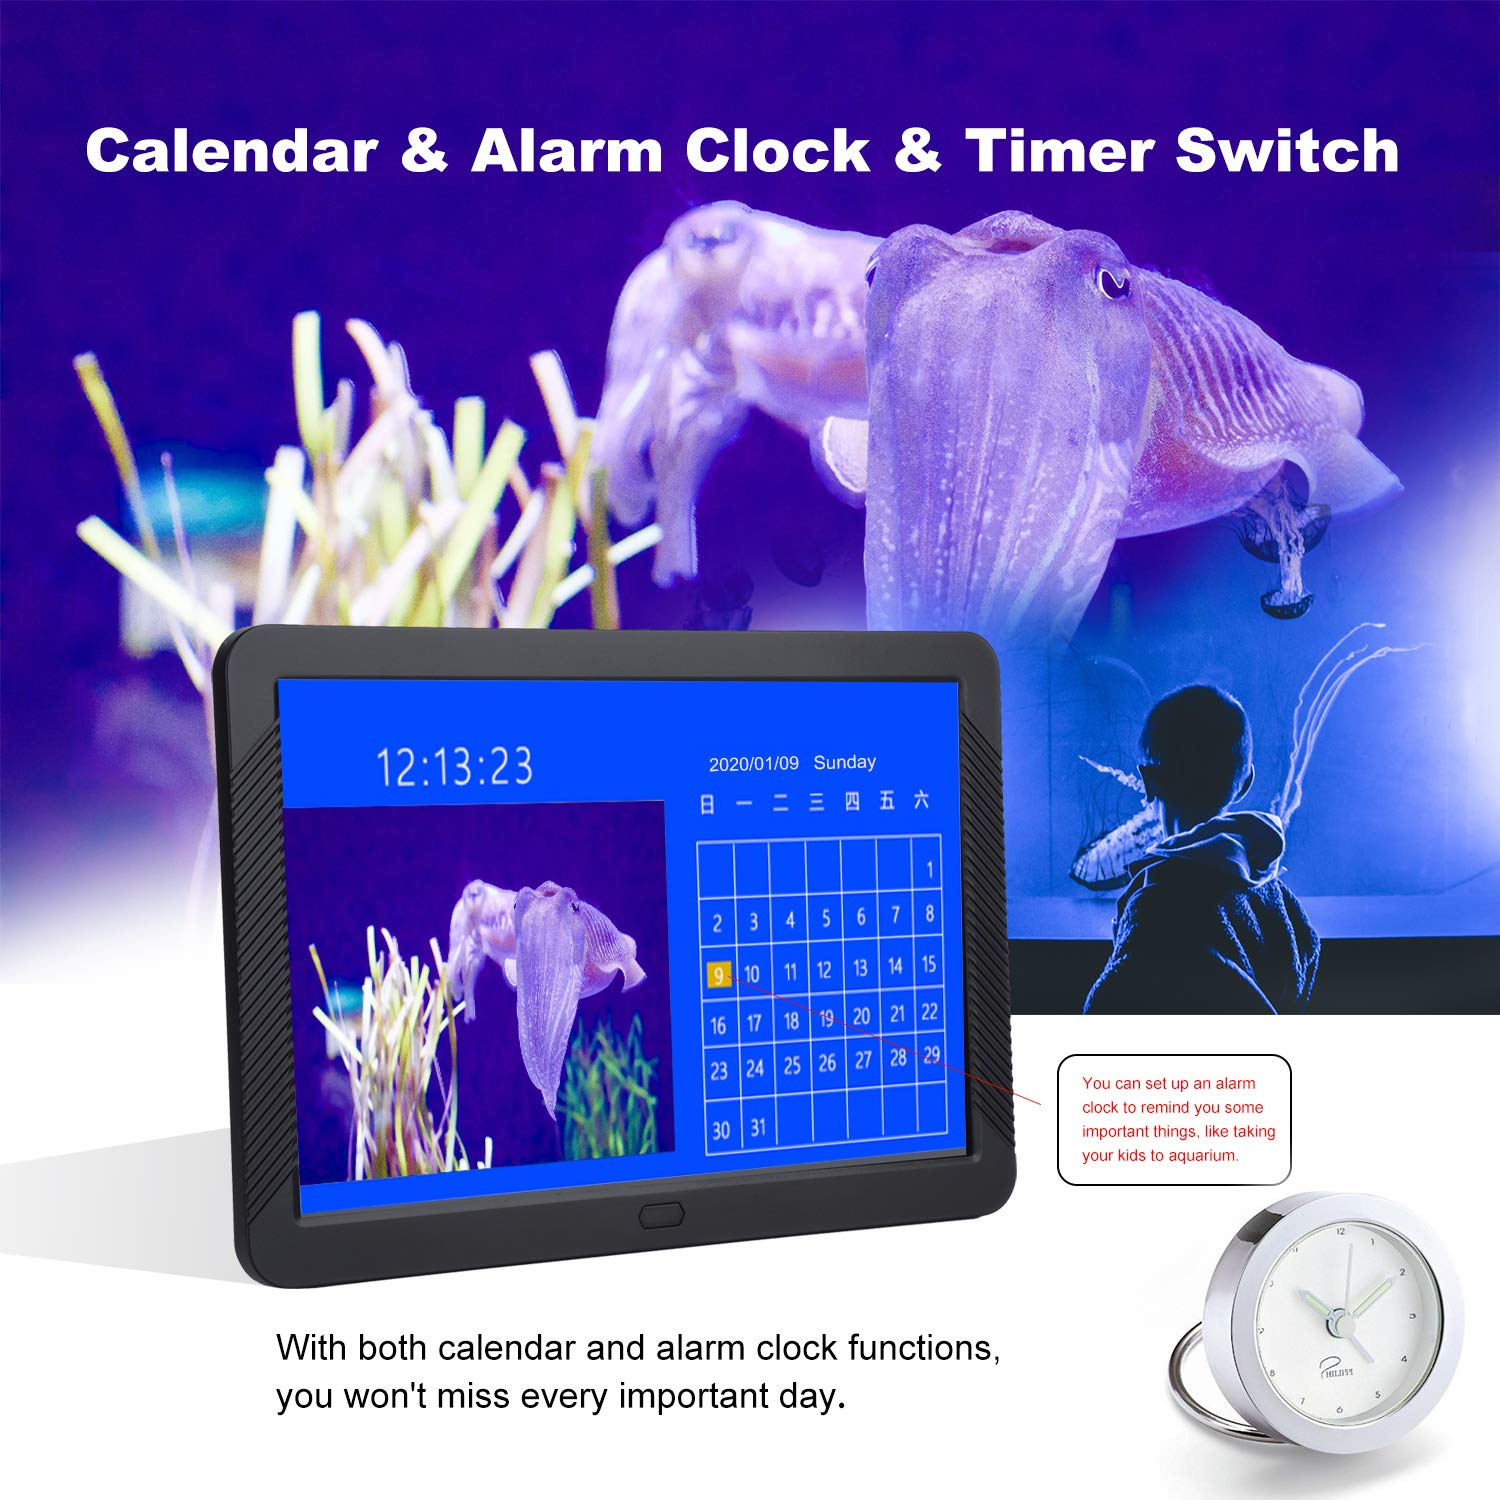 Digital Frame 8 Inch 1280 x 720 High Resolution Digital Picture Frame CofunKool 16:9 IPS Display Photos, Musics, Videos Digital Album Calendar Alarm Auto On/Off Timer